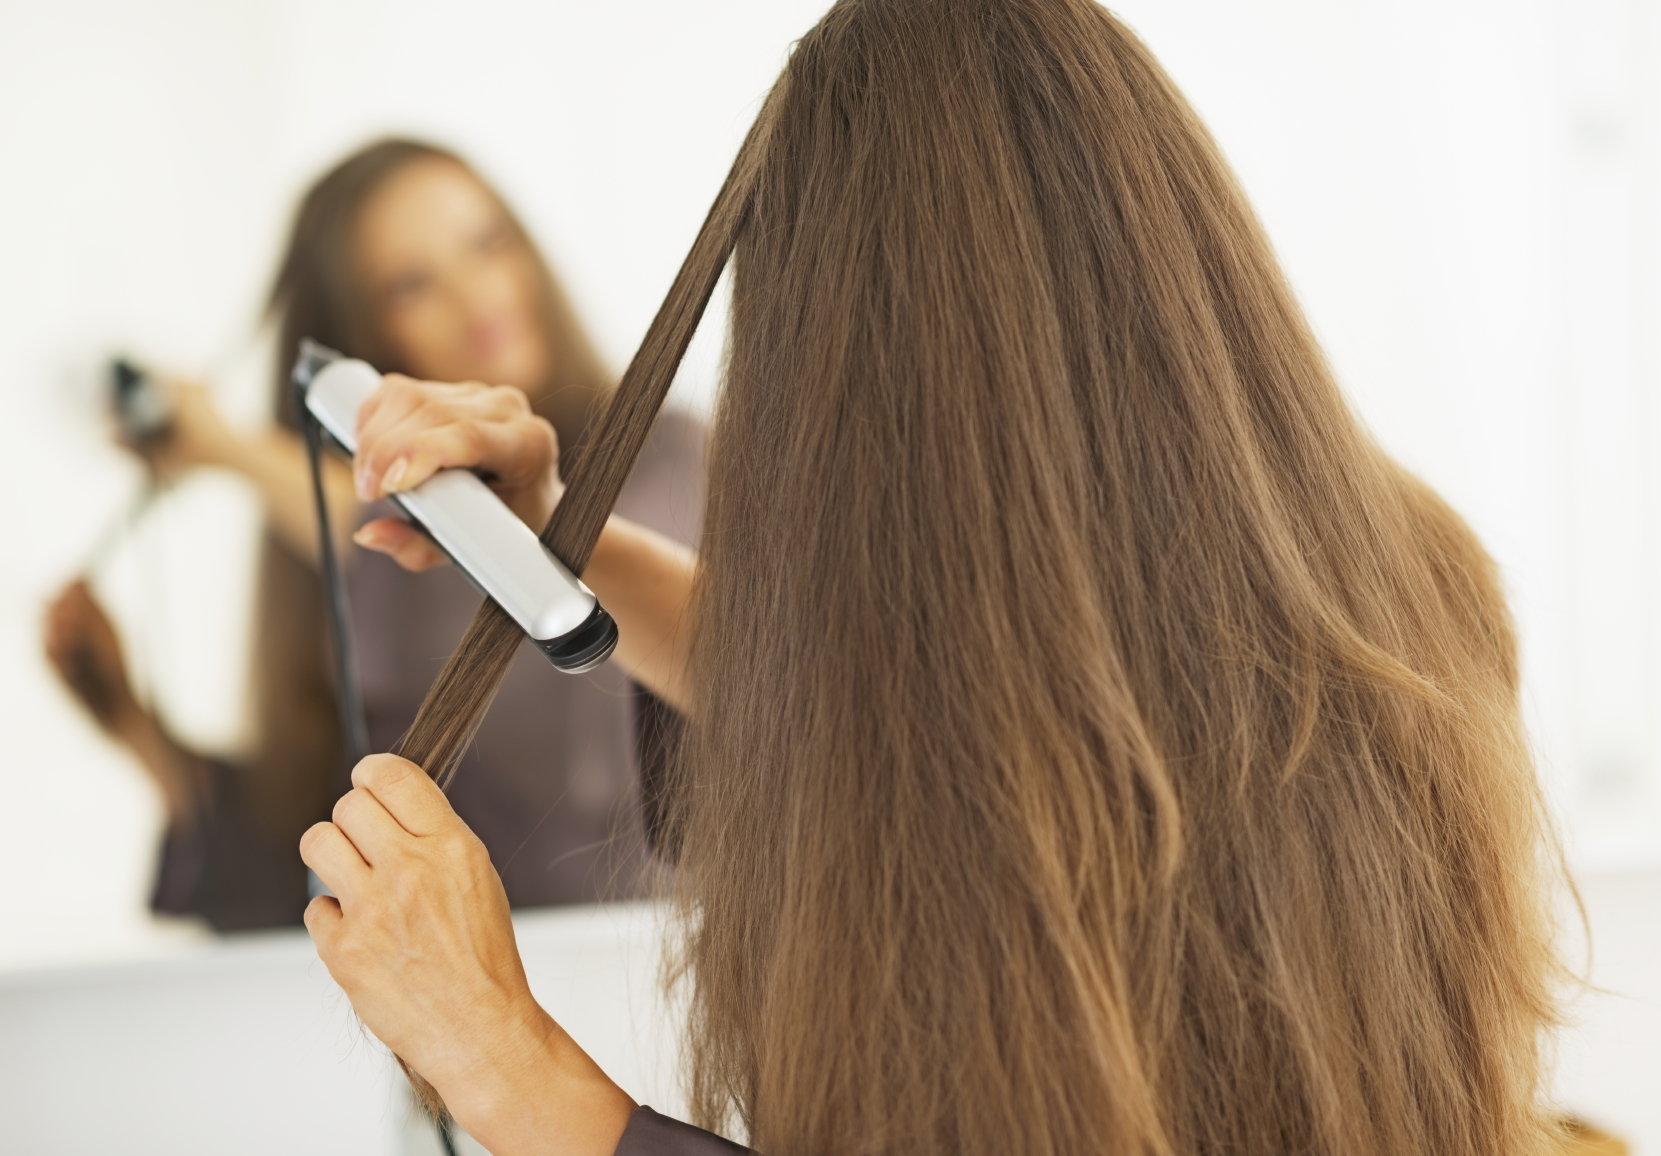 Healthy Hair Tips 13 Common Mistakes To Avoid Greatist